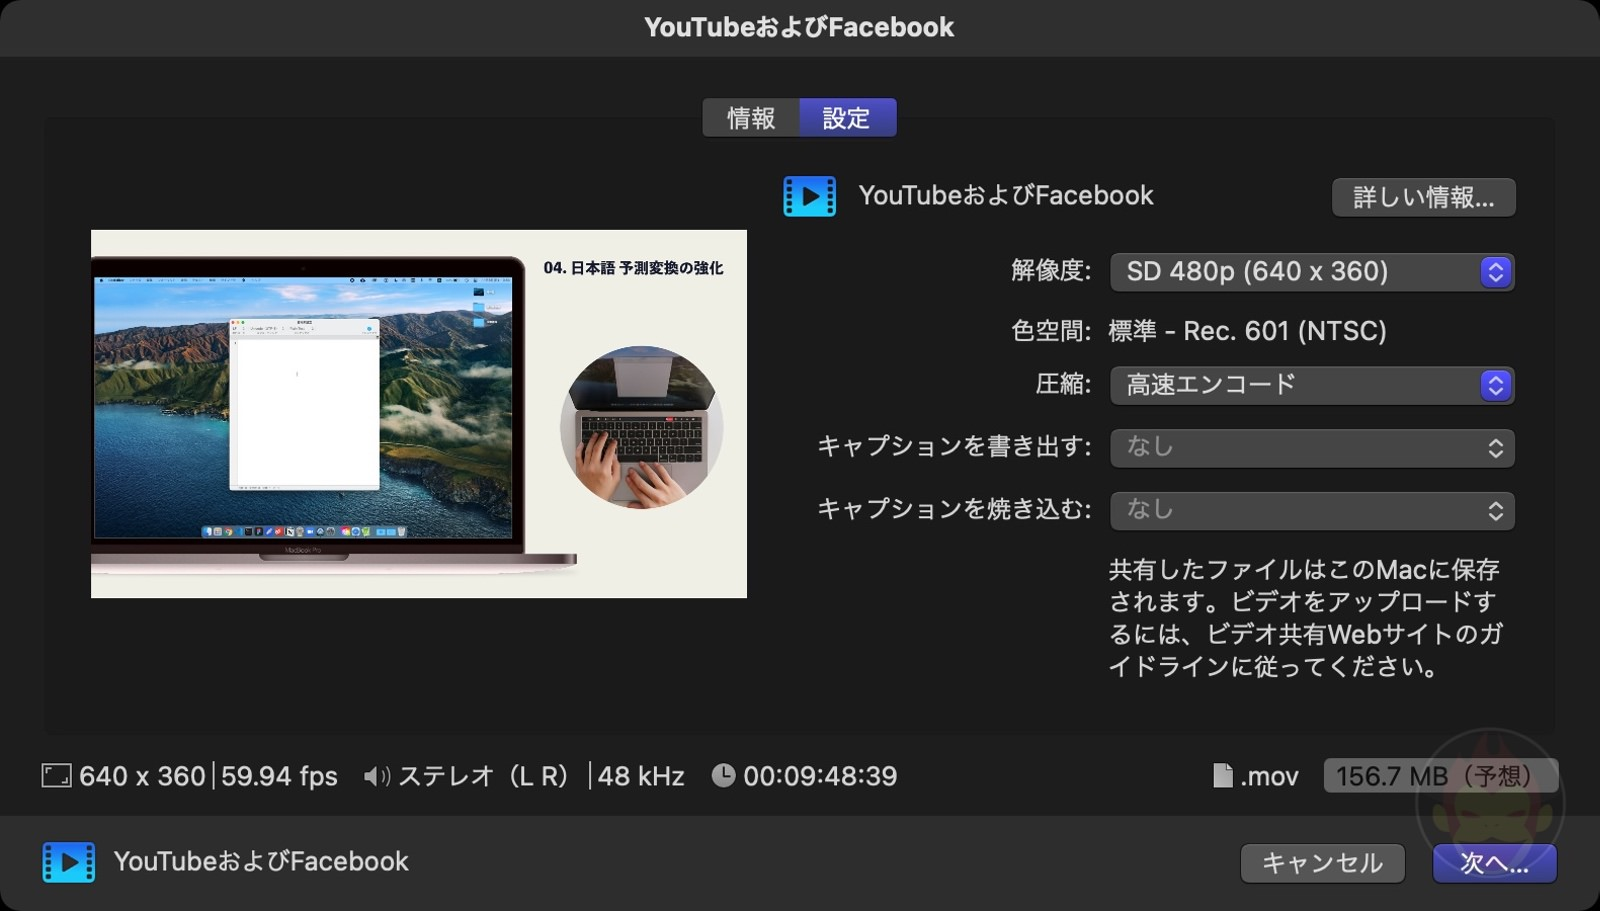 YouTube and Facebook upload settings 01